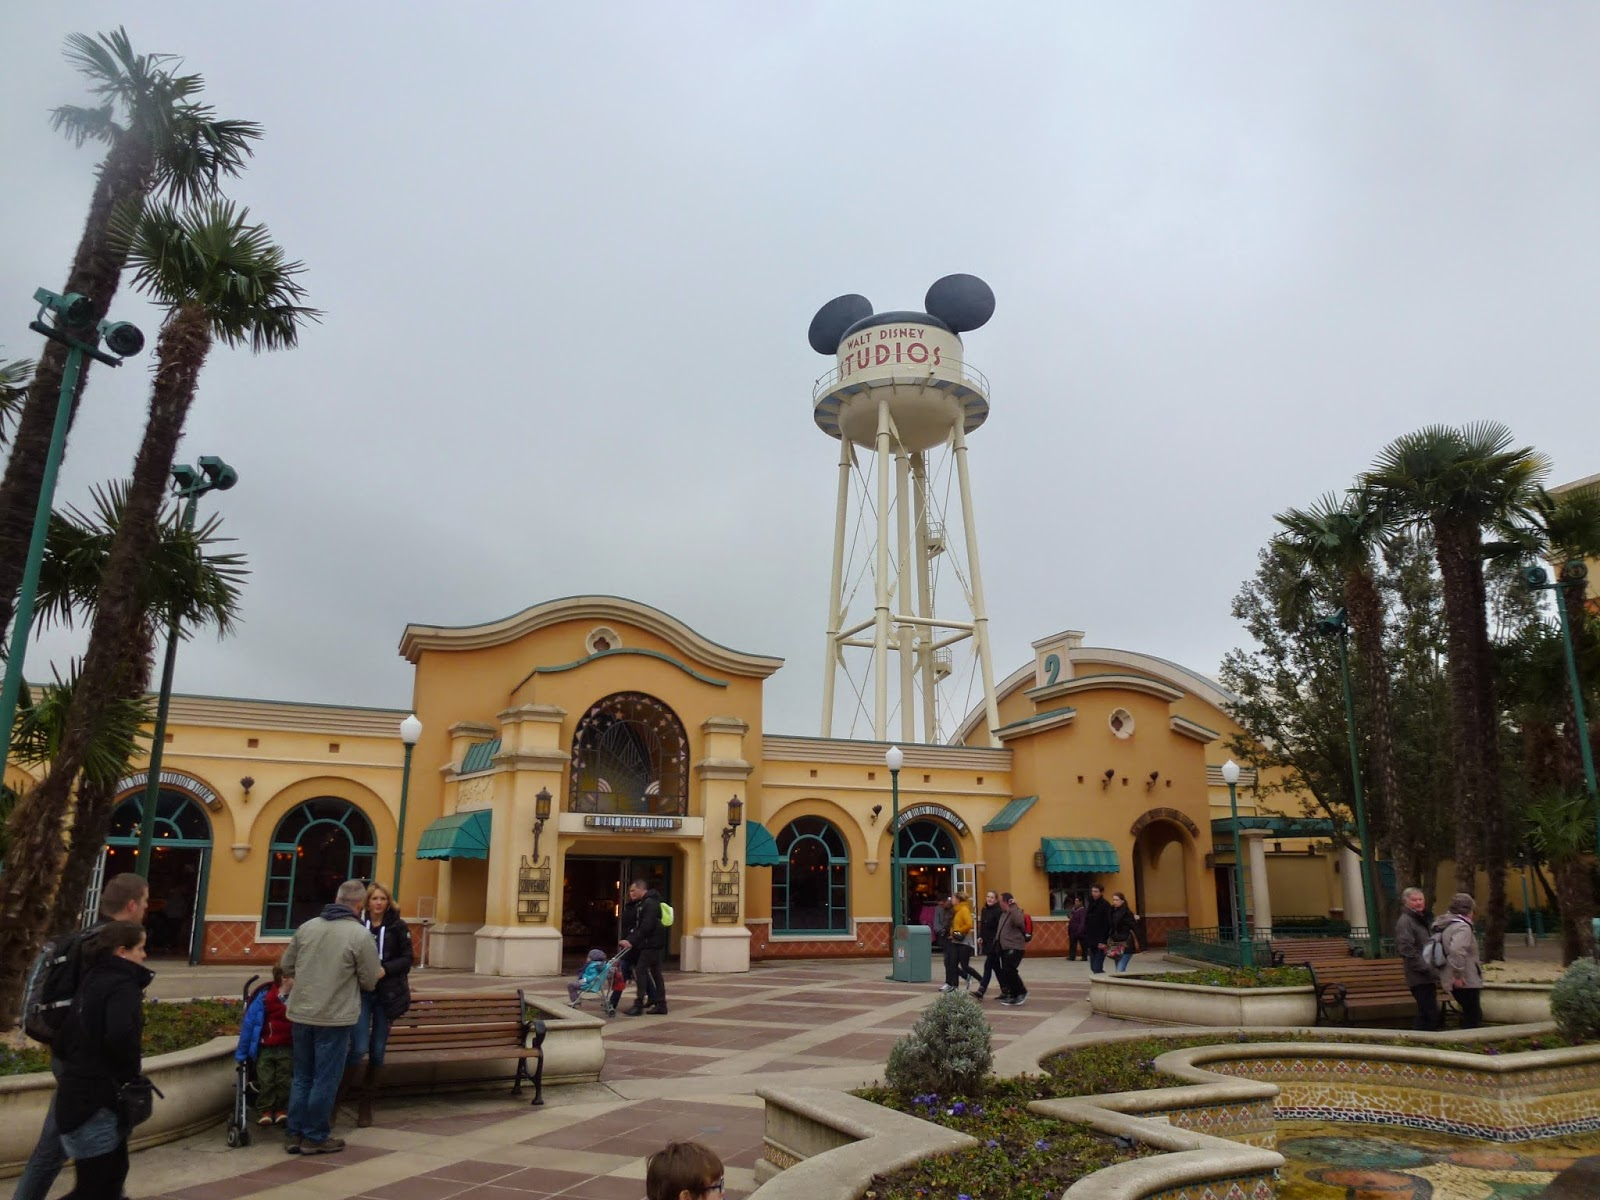 Disneyland in paris facts for an essay